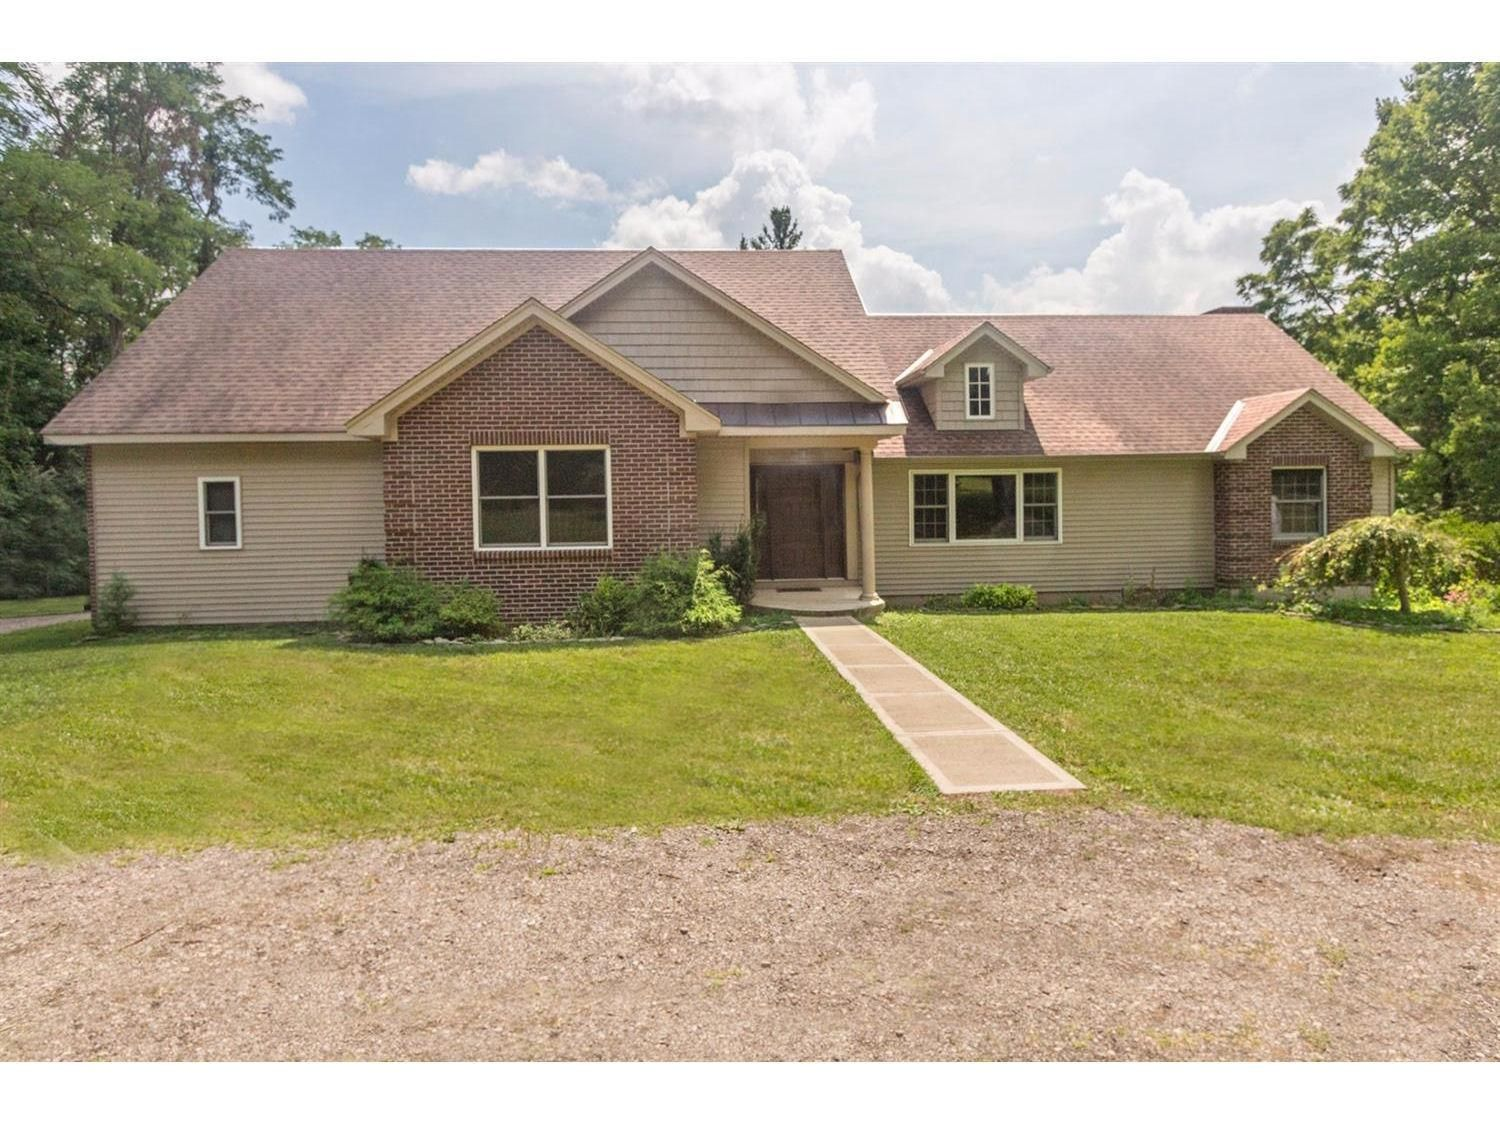 5035 Staas Rd Green Twp. - Hamilton Co., OH